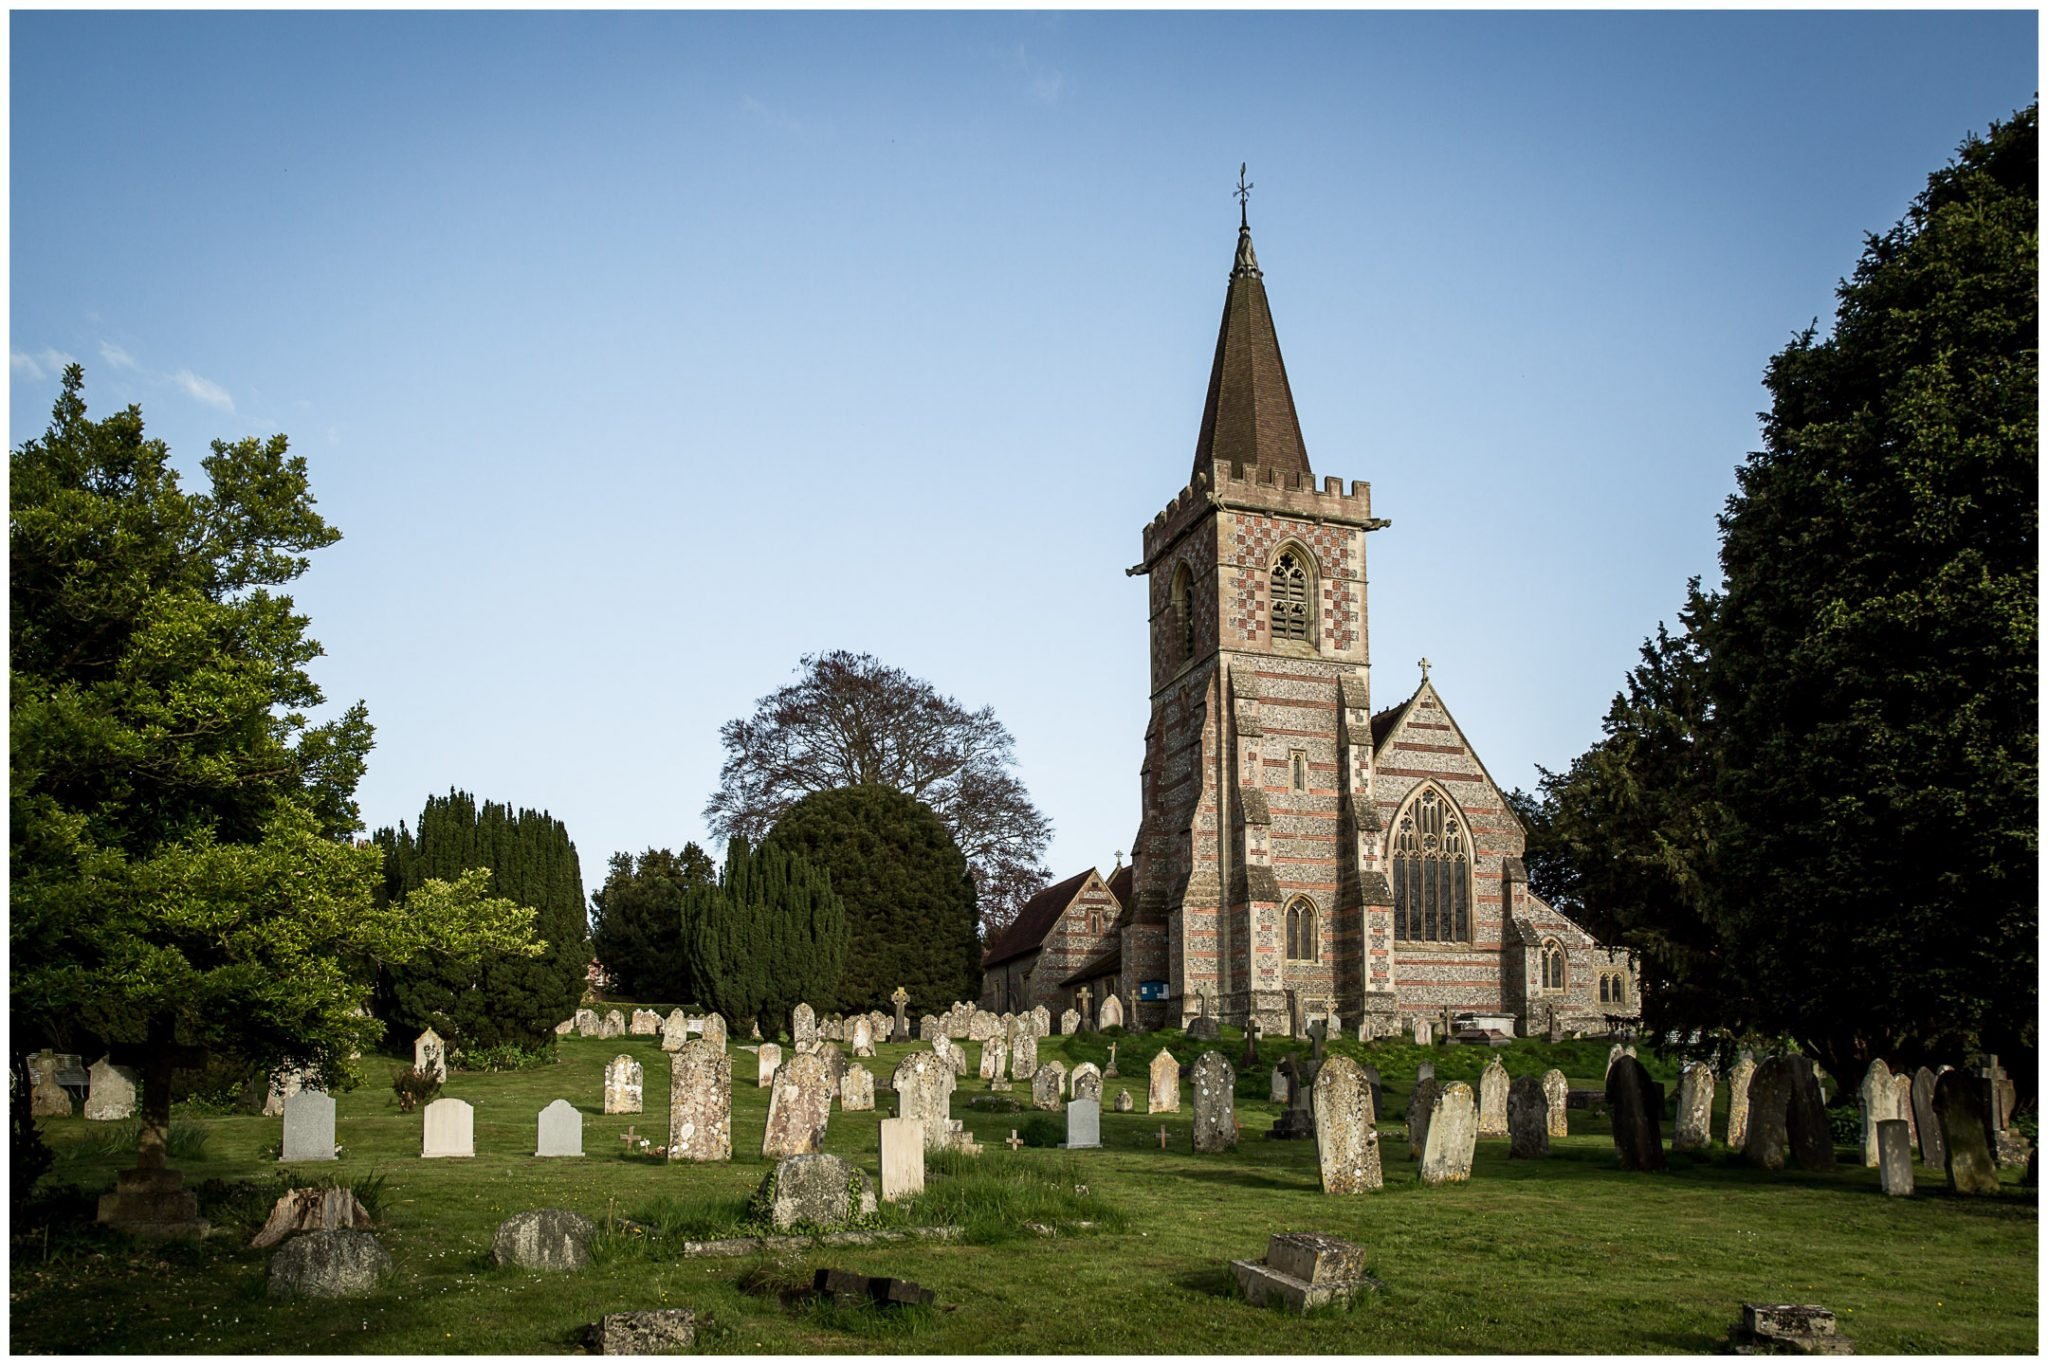 Exterior photo of St Mary's Twyford Church